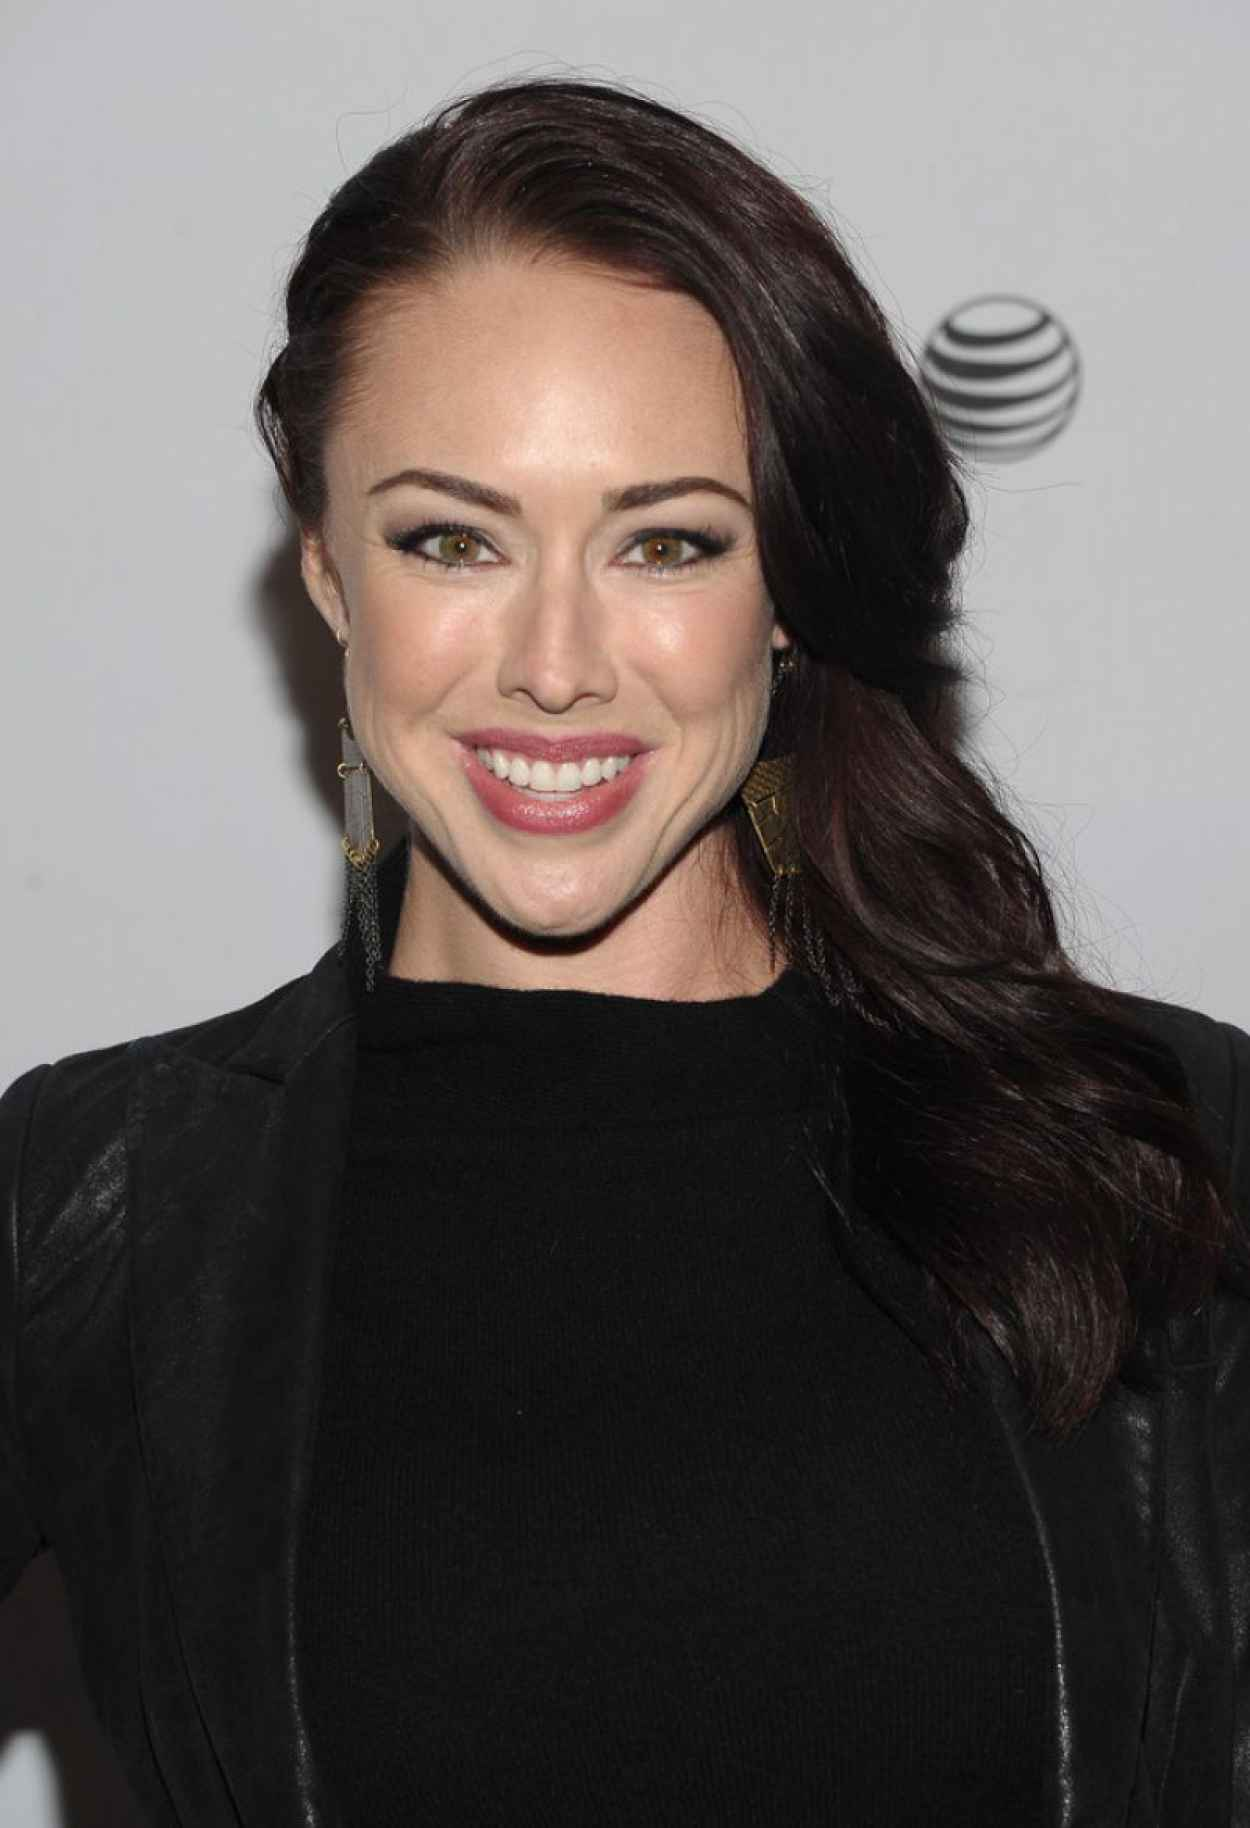 lindsey mckeon boy meets worldlindsey mckeon net worth, lindsey mckeon instagram, lindsey mckeon tumblr, lindsey mckeon interview, lindsey mckeon, lindsey mckeon supernatural, lindsey mckeon chris evans, lindsey mckeon blog, lindsey mckeon twitter, lindsey mckeon wedding, lindsey mckeon listal, lindsey mckeon boy meets world, lindsey mckeon nudography, lindsey mckeon husband, lindsey mckeon parents, lindsey mckeon married